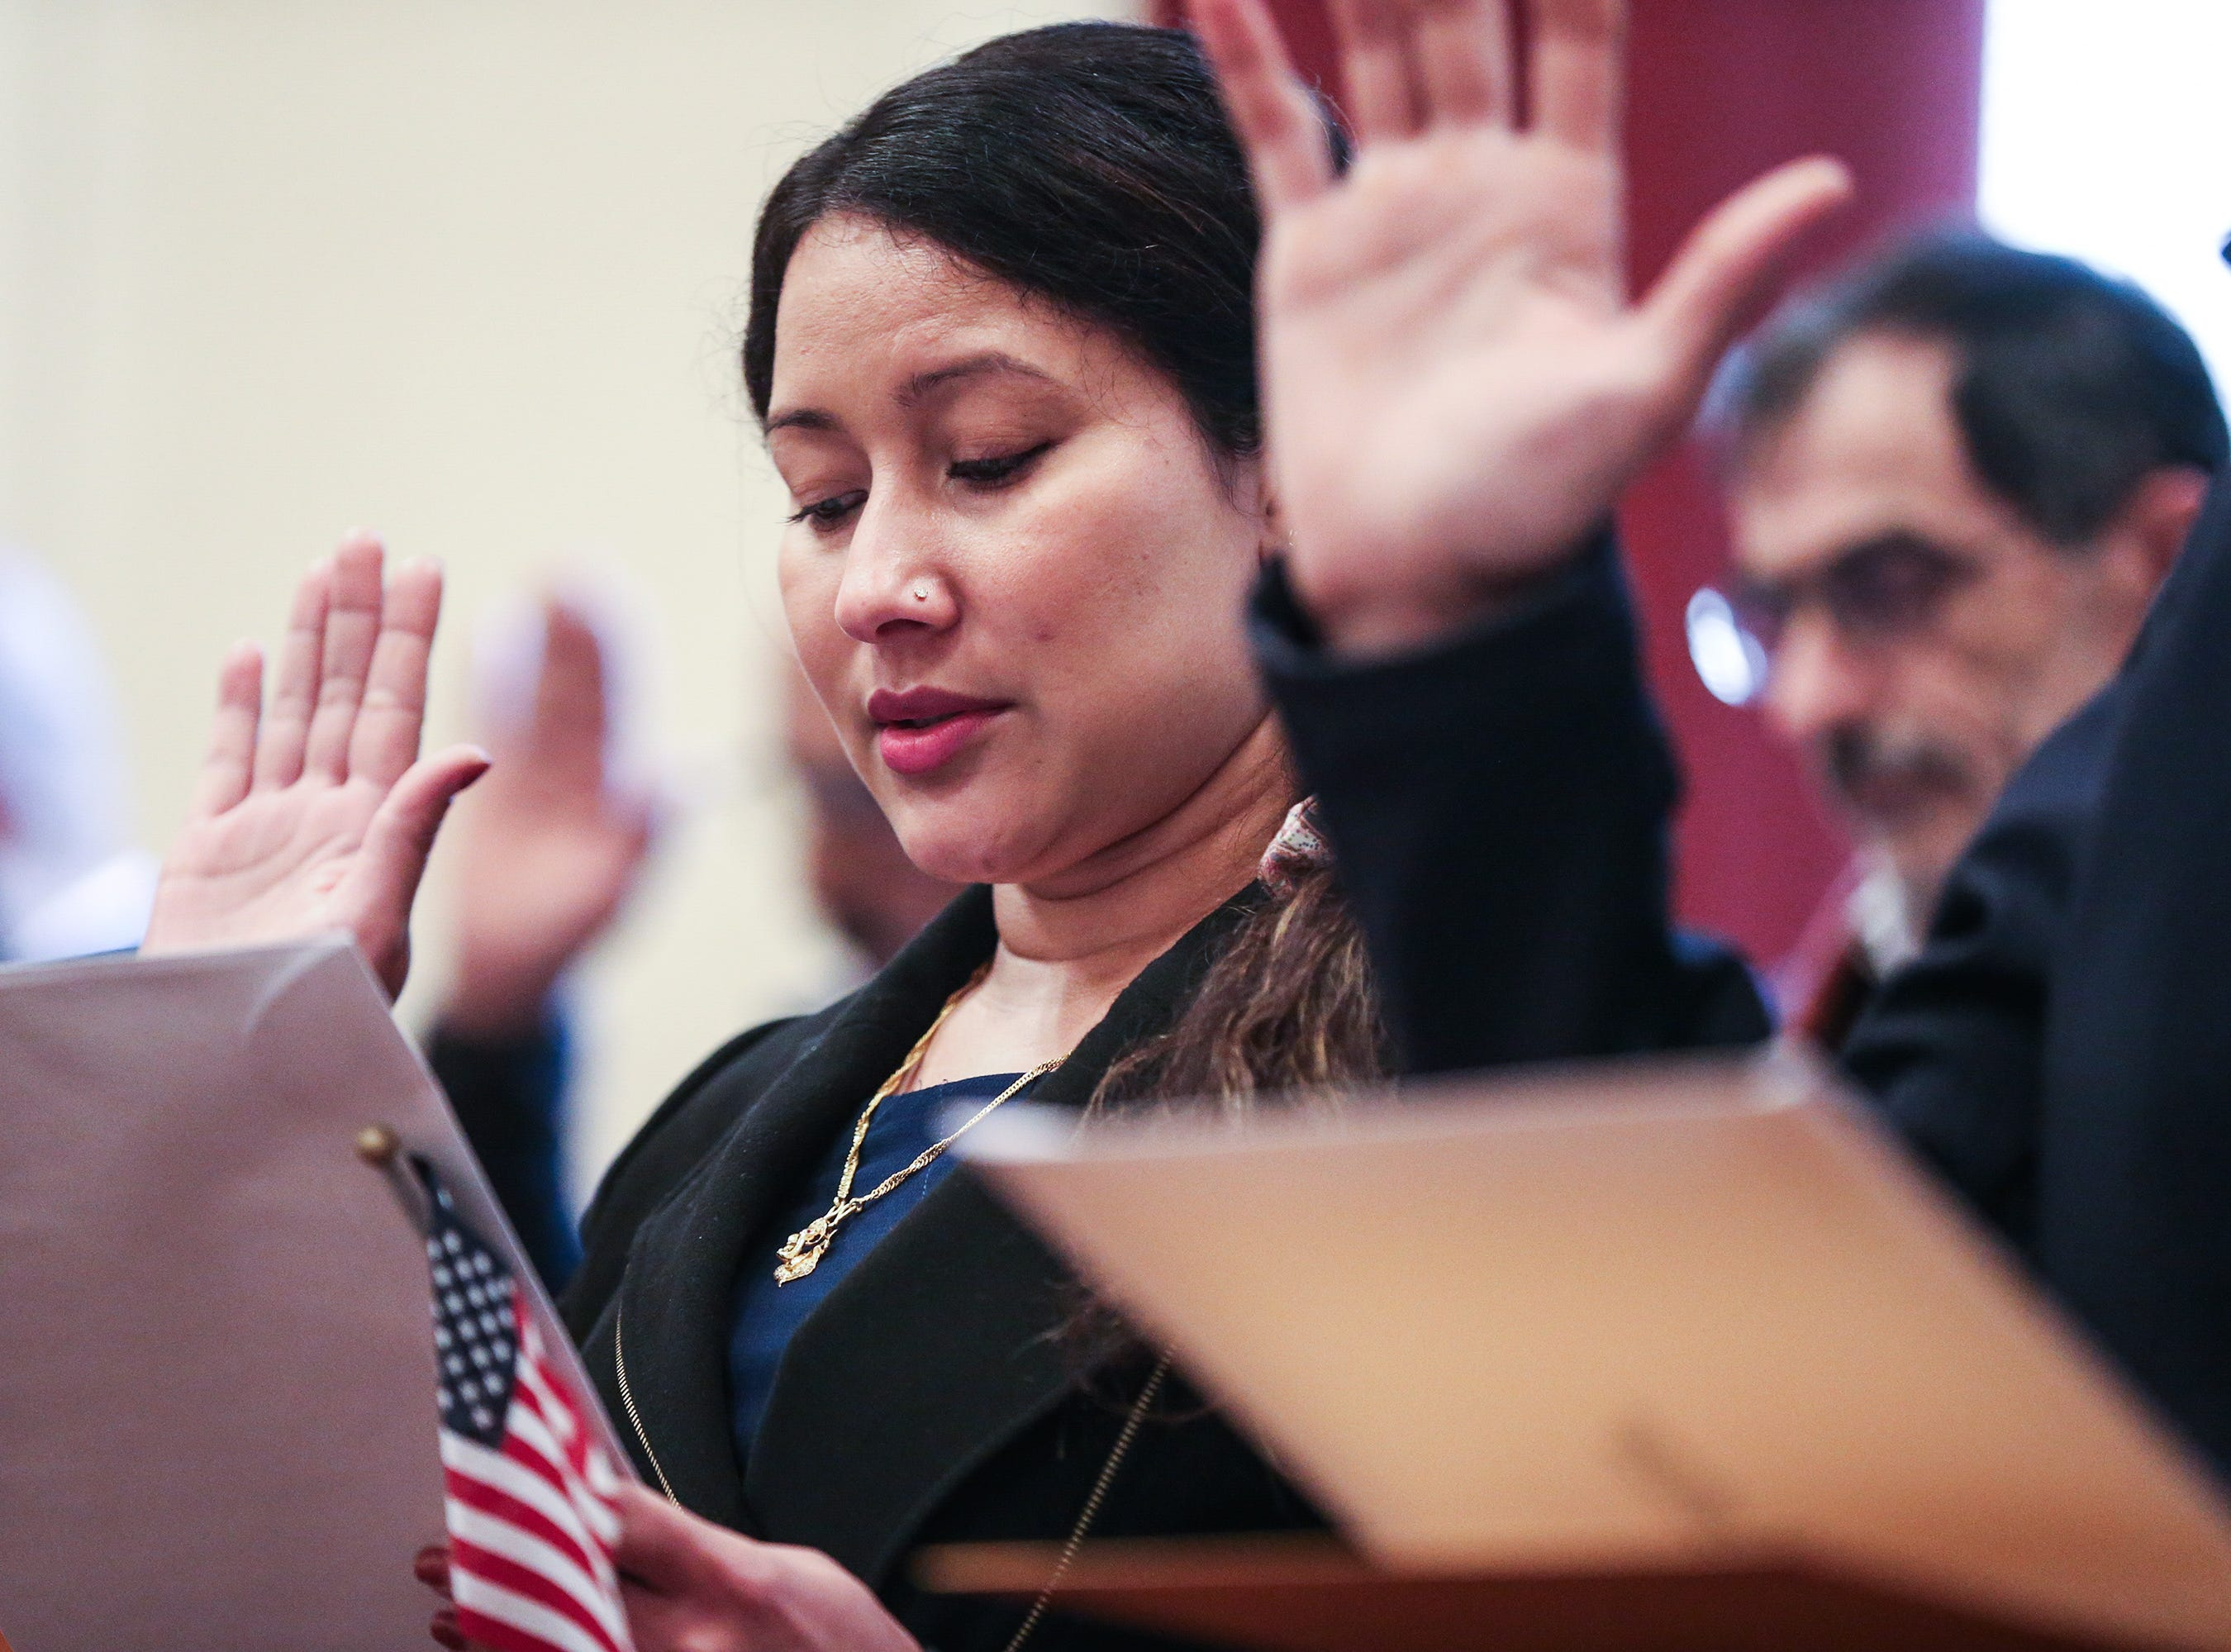 Sushmita Karki Niraula takes an oath during the naturalization ceremony Wednesday, Jan. 8, 2019, at the O.C. Fisher Federal Building.